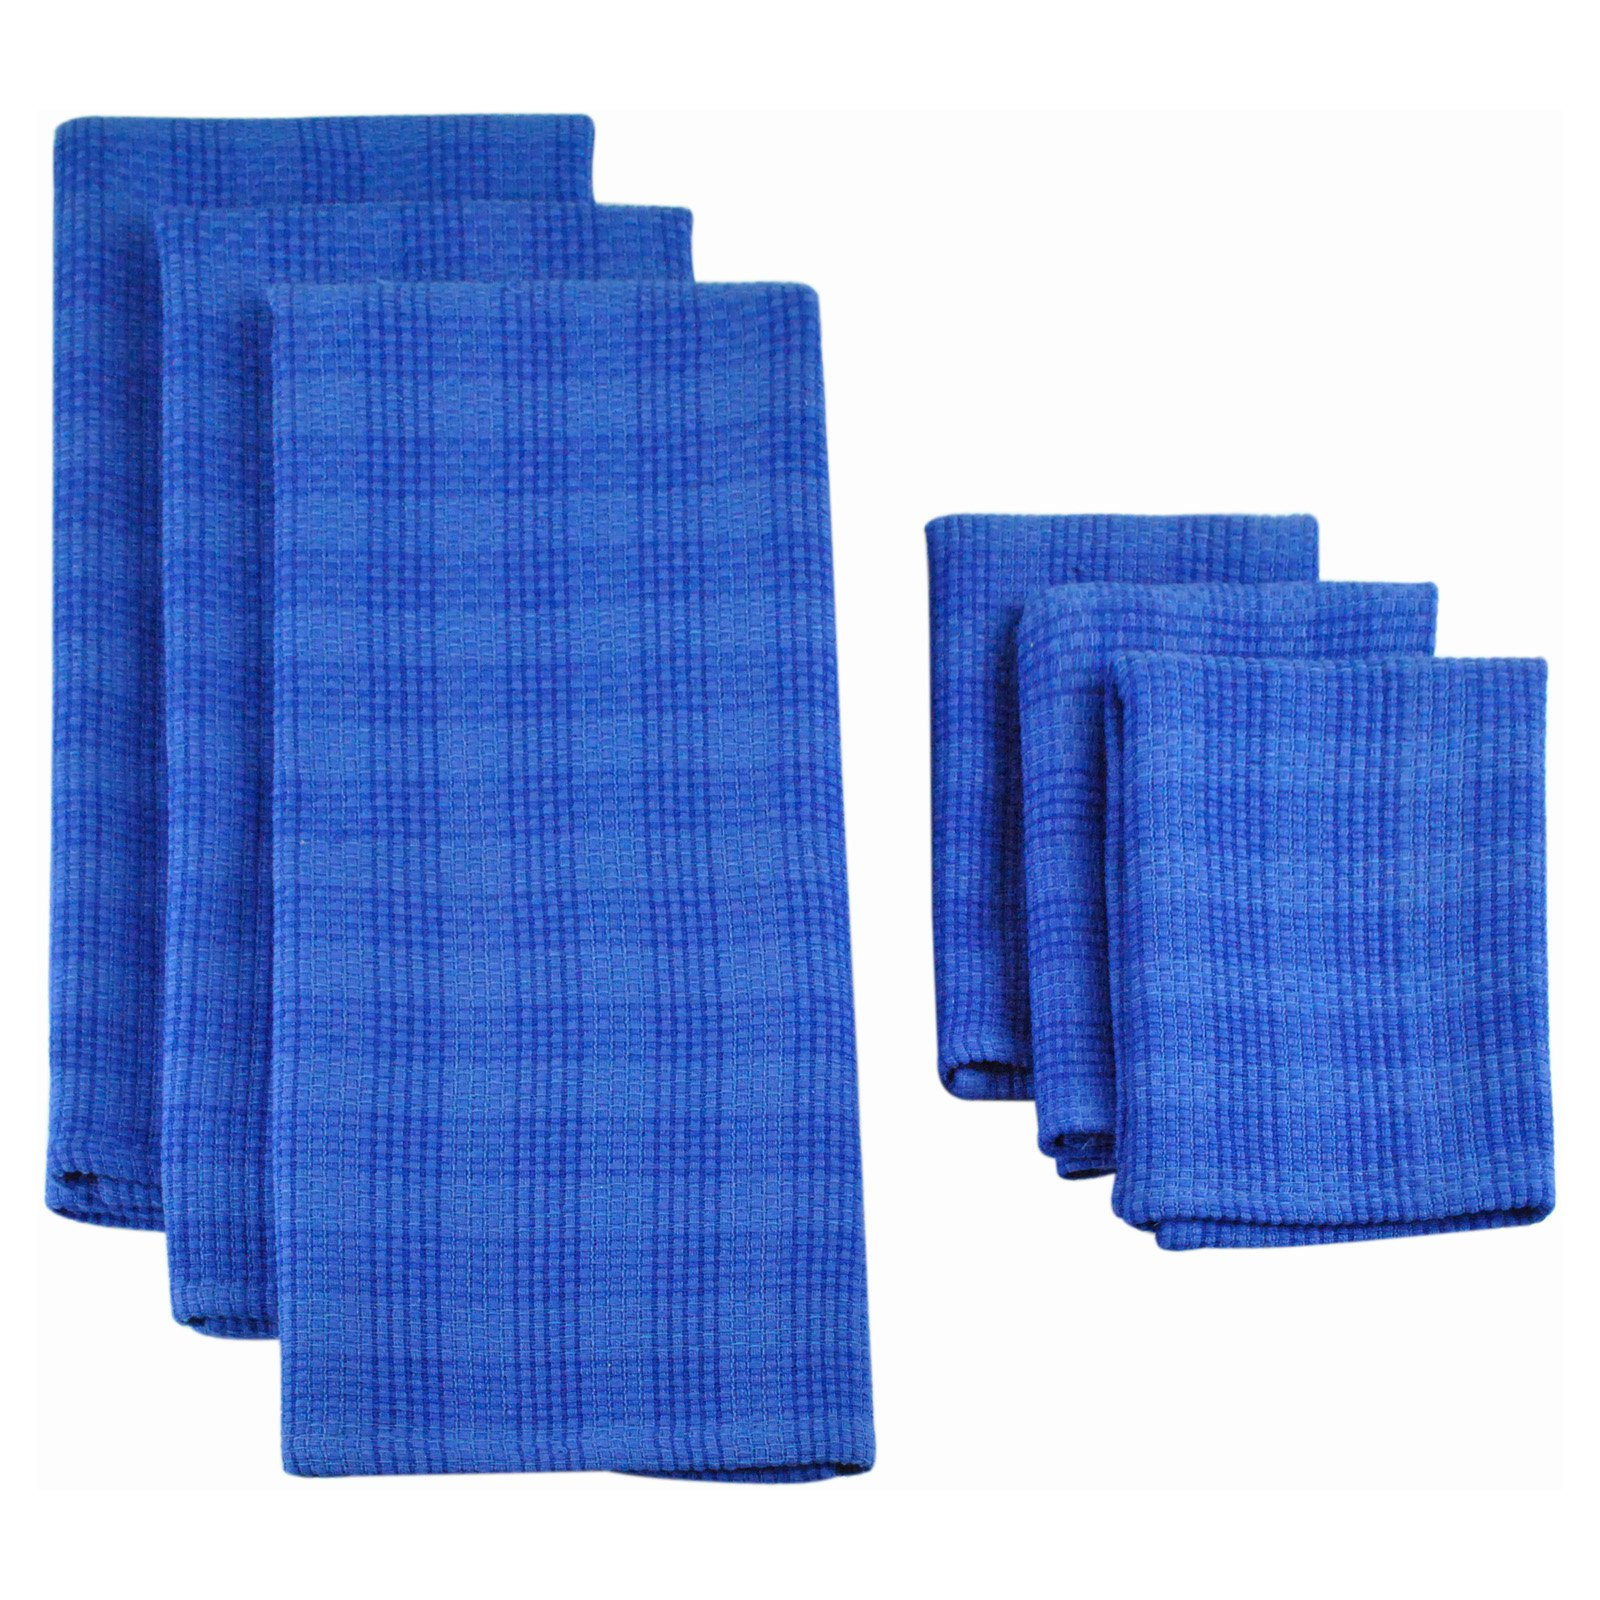 Design Imports Blueberry Plaid Heavyweight 6 Piece Dishtowel and Dishcloth Set